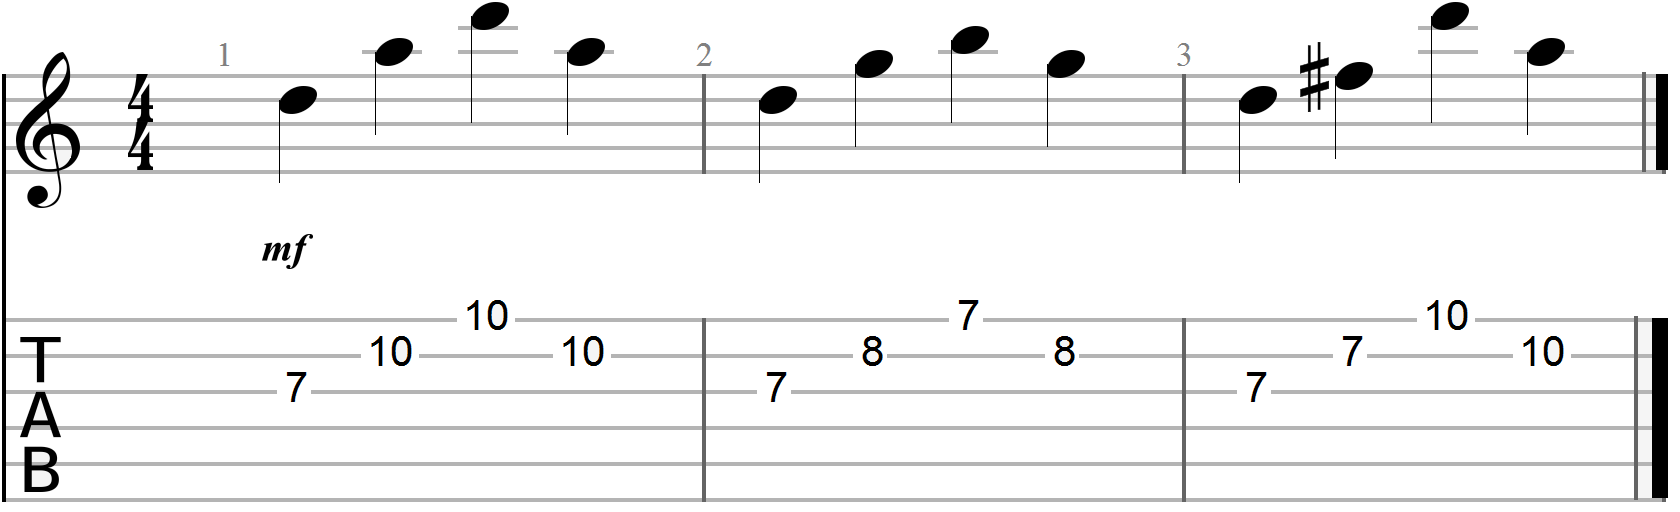 Arpeggiated D Major Chord Shape on the Seventh Fret (progression)